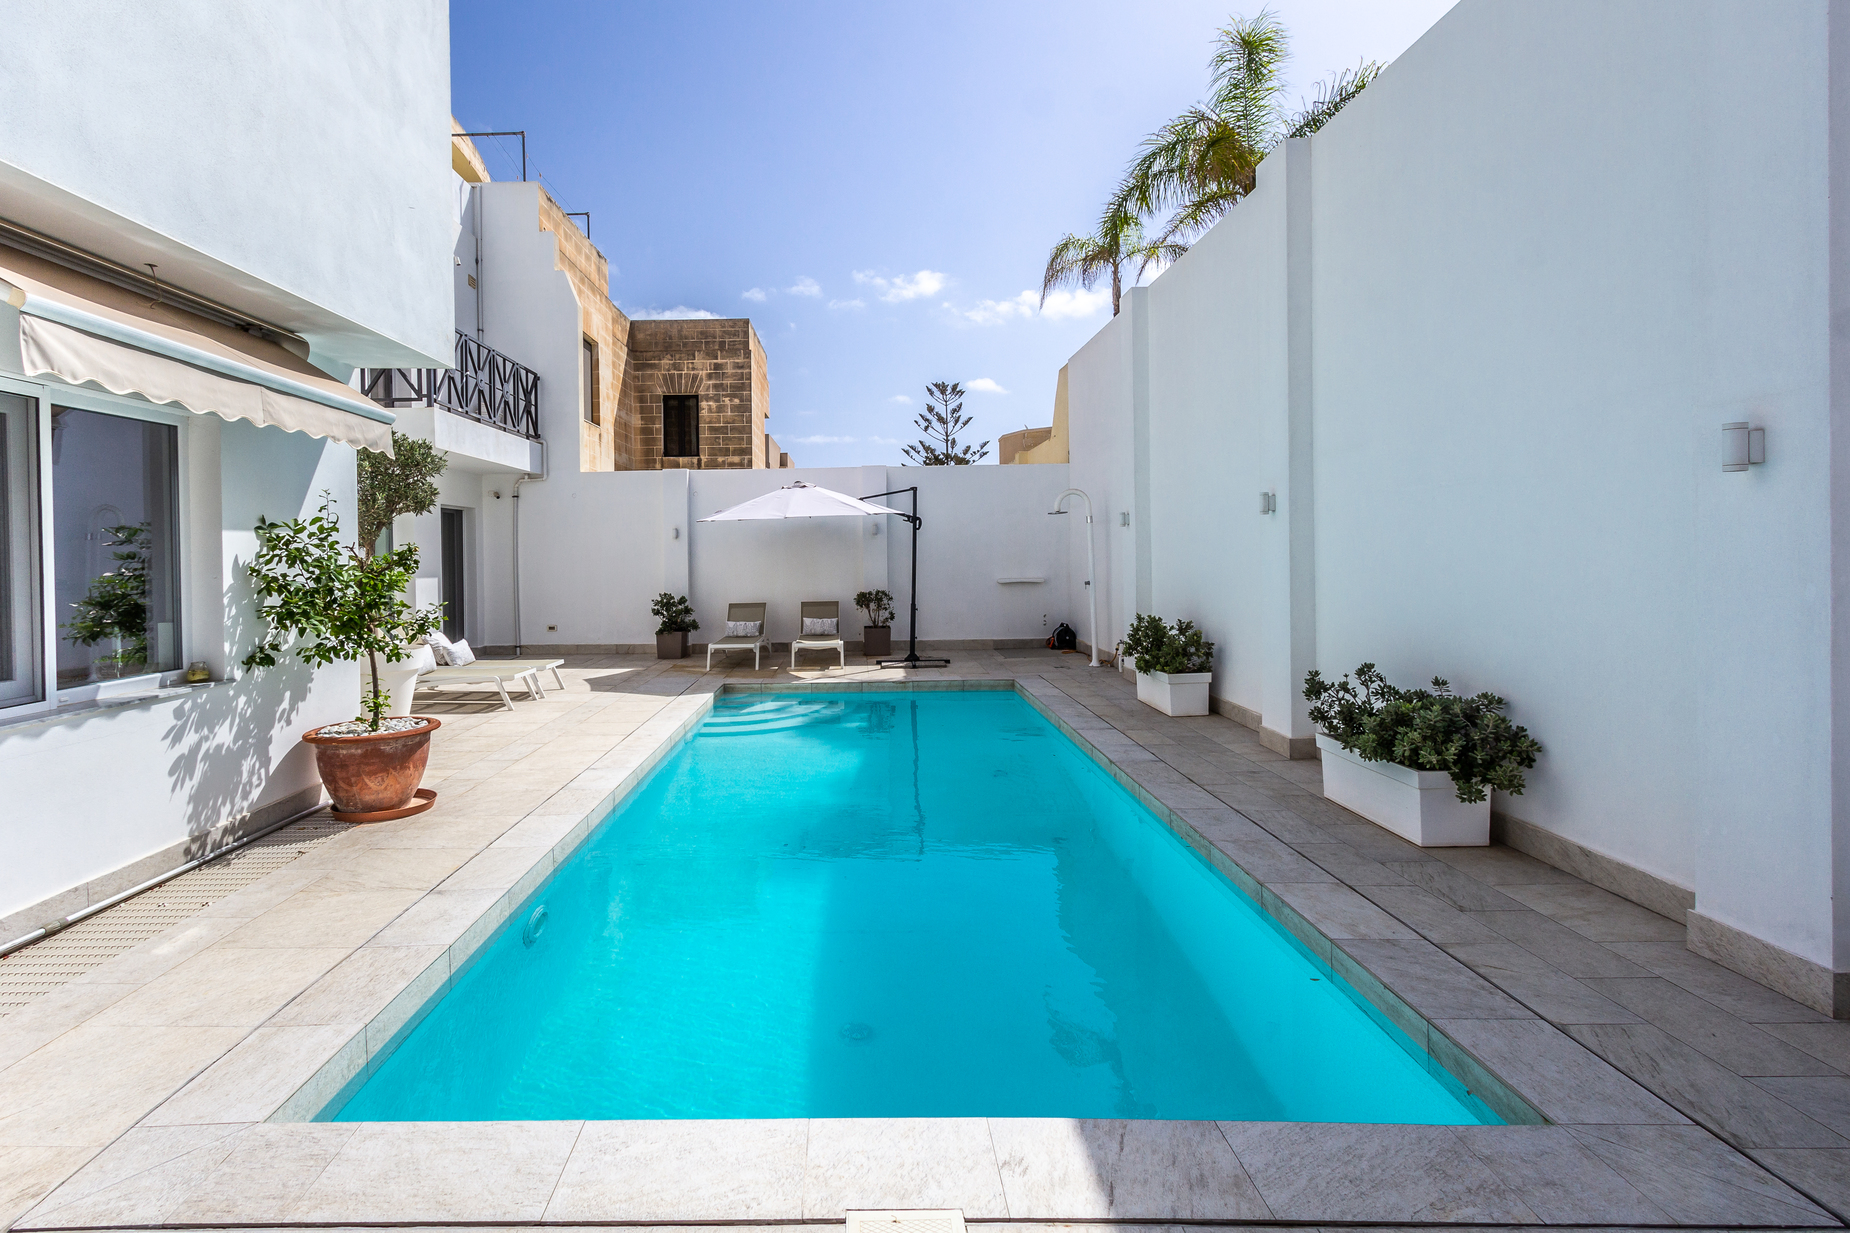 3 bed Villa For Sale in Madliena, Madliena - thumb 4